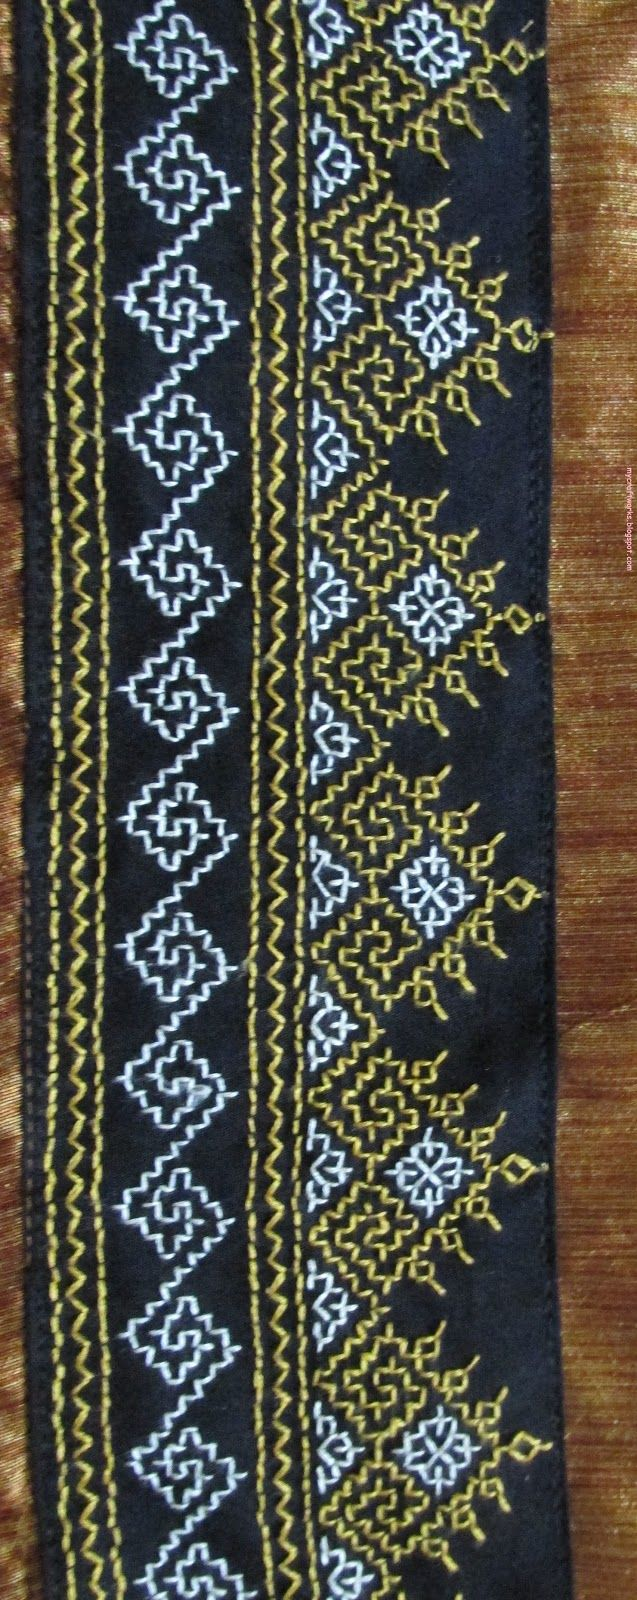 My Craft Works Kasuti Embroidery Tops   Kutchi Patterns   Pinterest   Embroidery Craft And ...